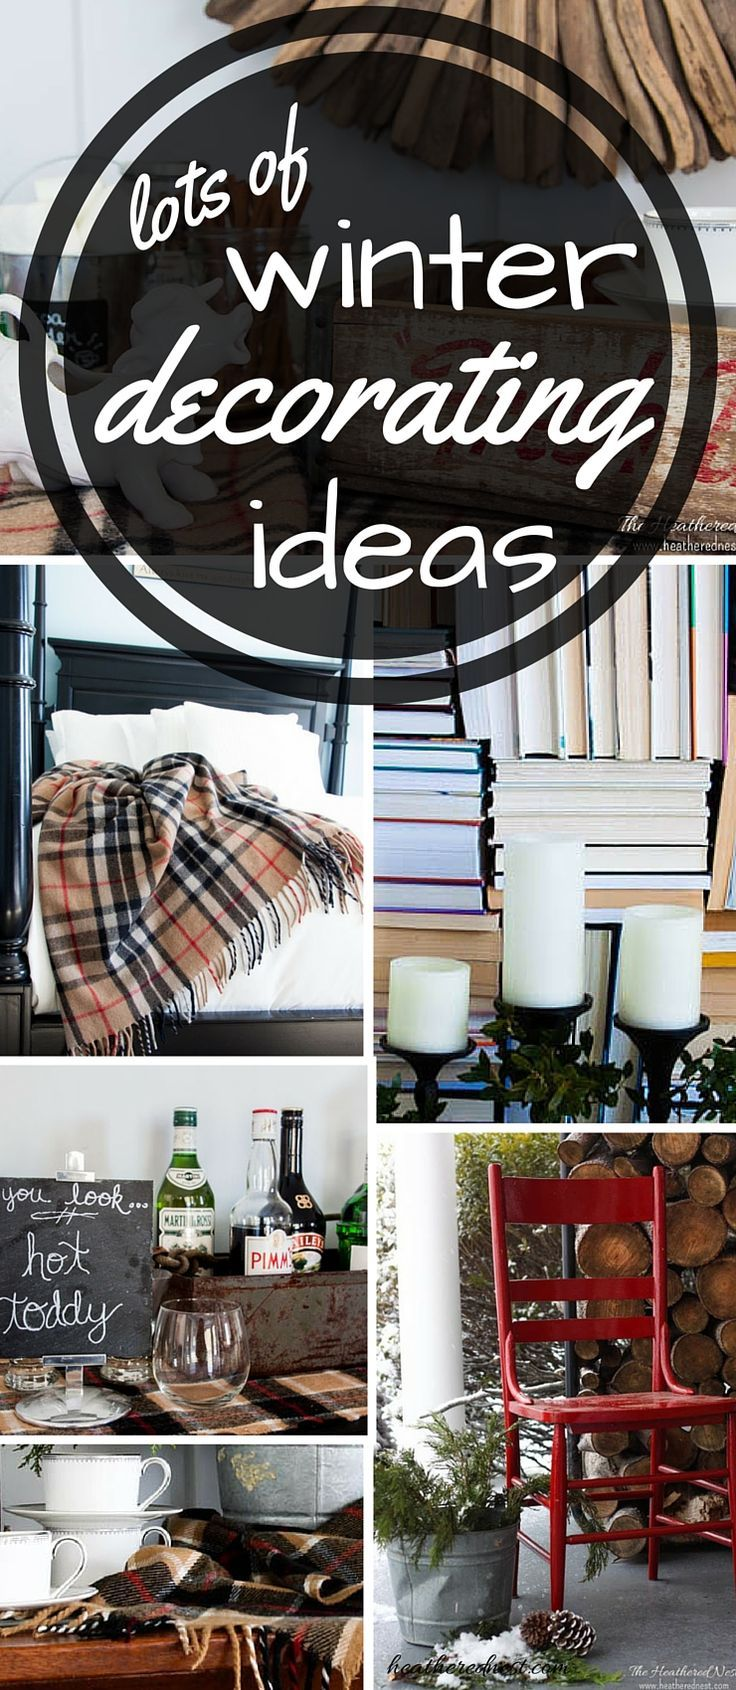 Great ideas to warm up winter decor from http://www.heatherednest.com THESE ARE SO EASY & AFFORDABLE!!